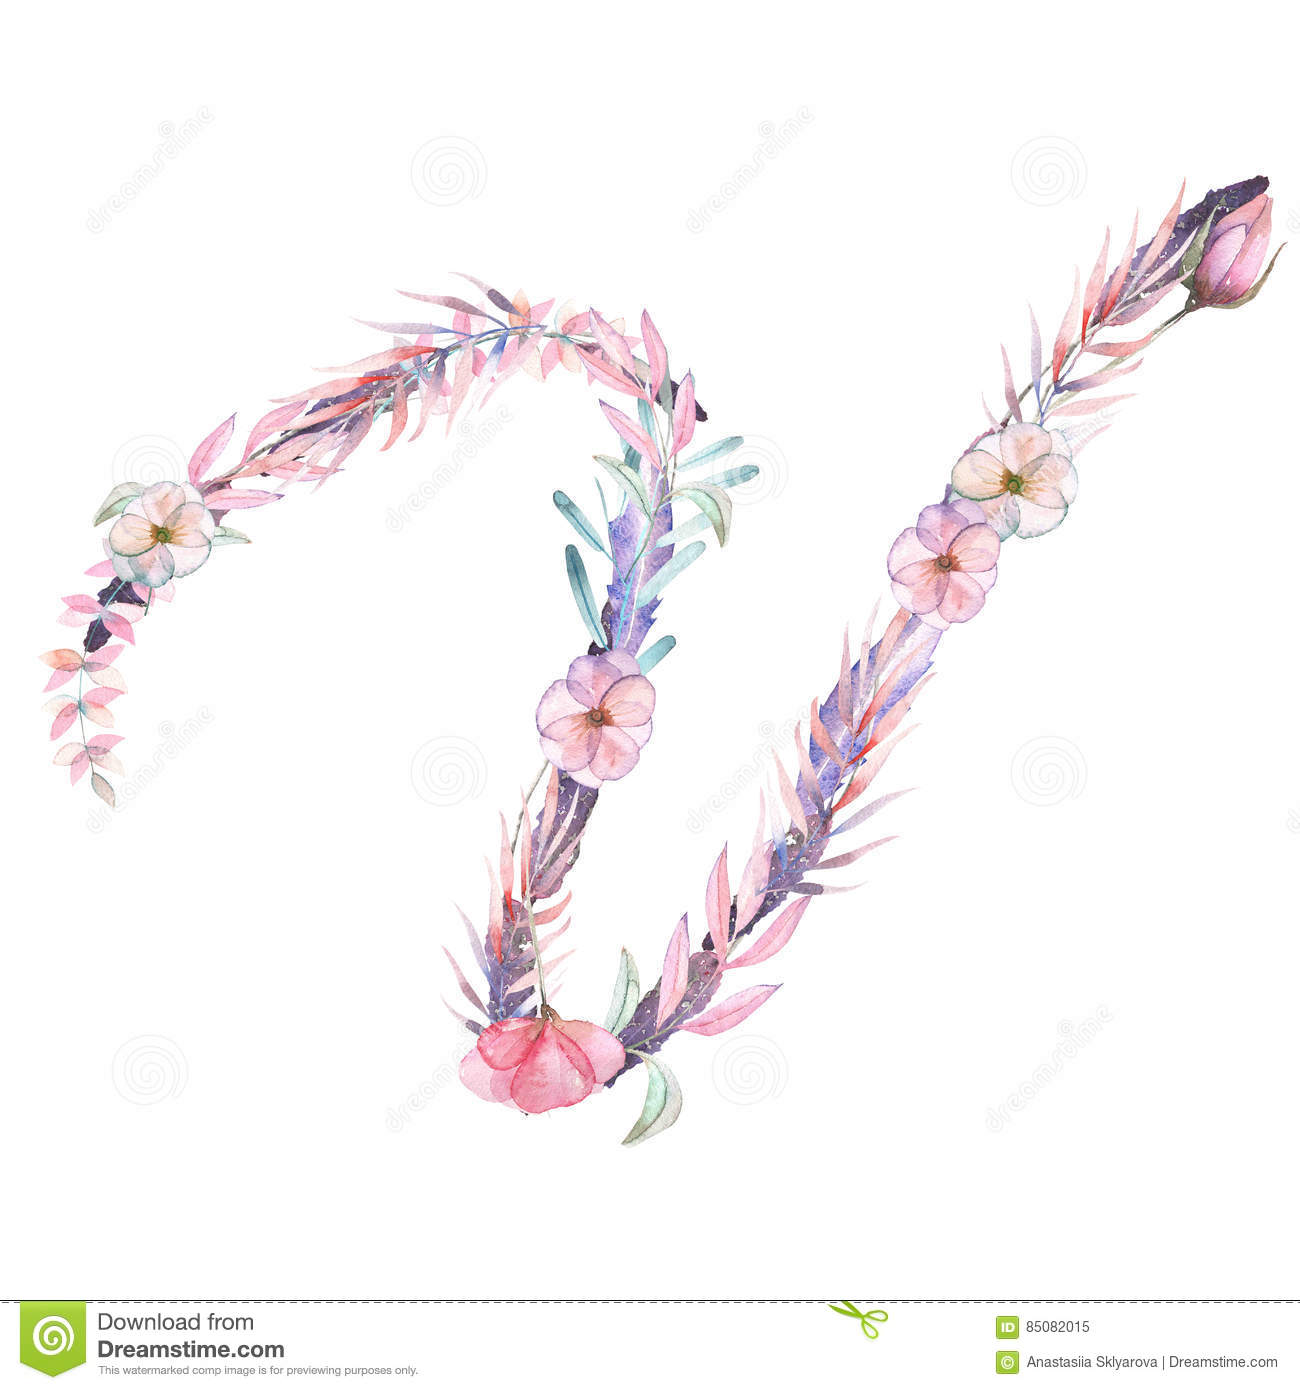 Capital letter v of watercolor pink and purple flowers stock capital letter v of watercolor pink and purple flowers altavistaventures Choice Image